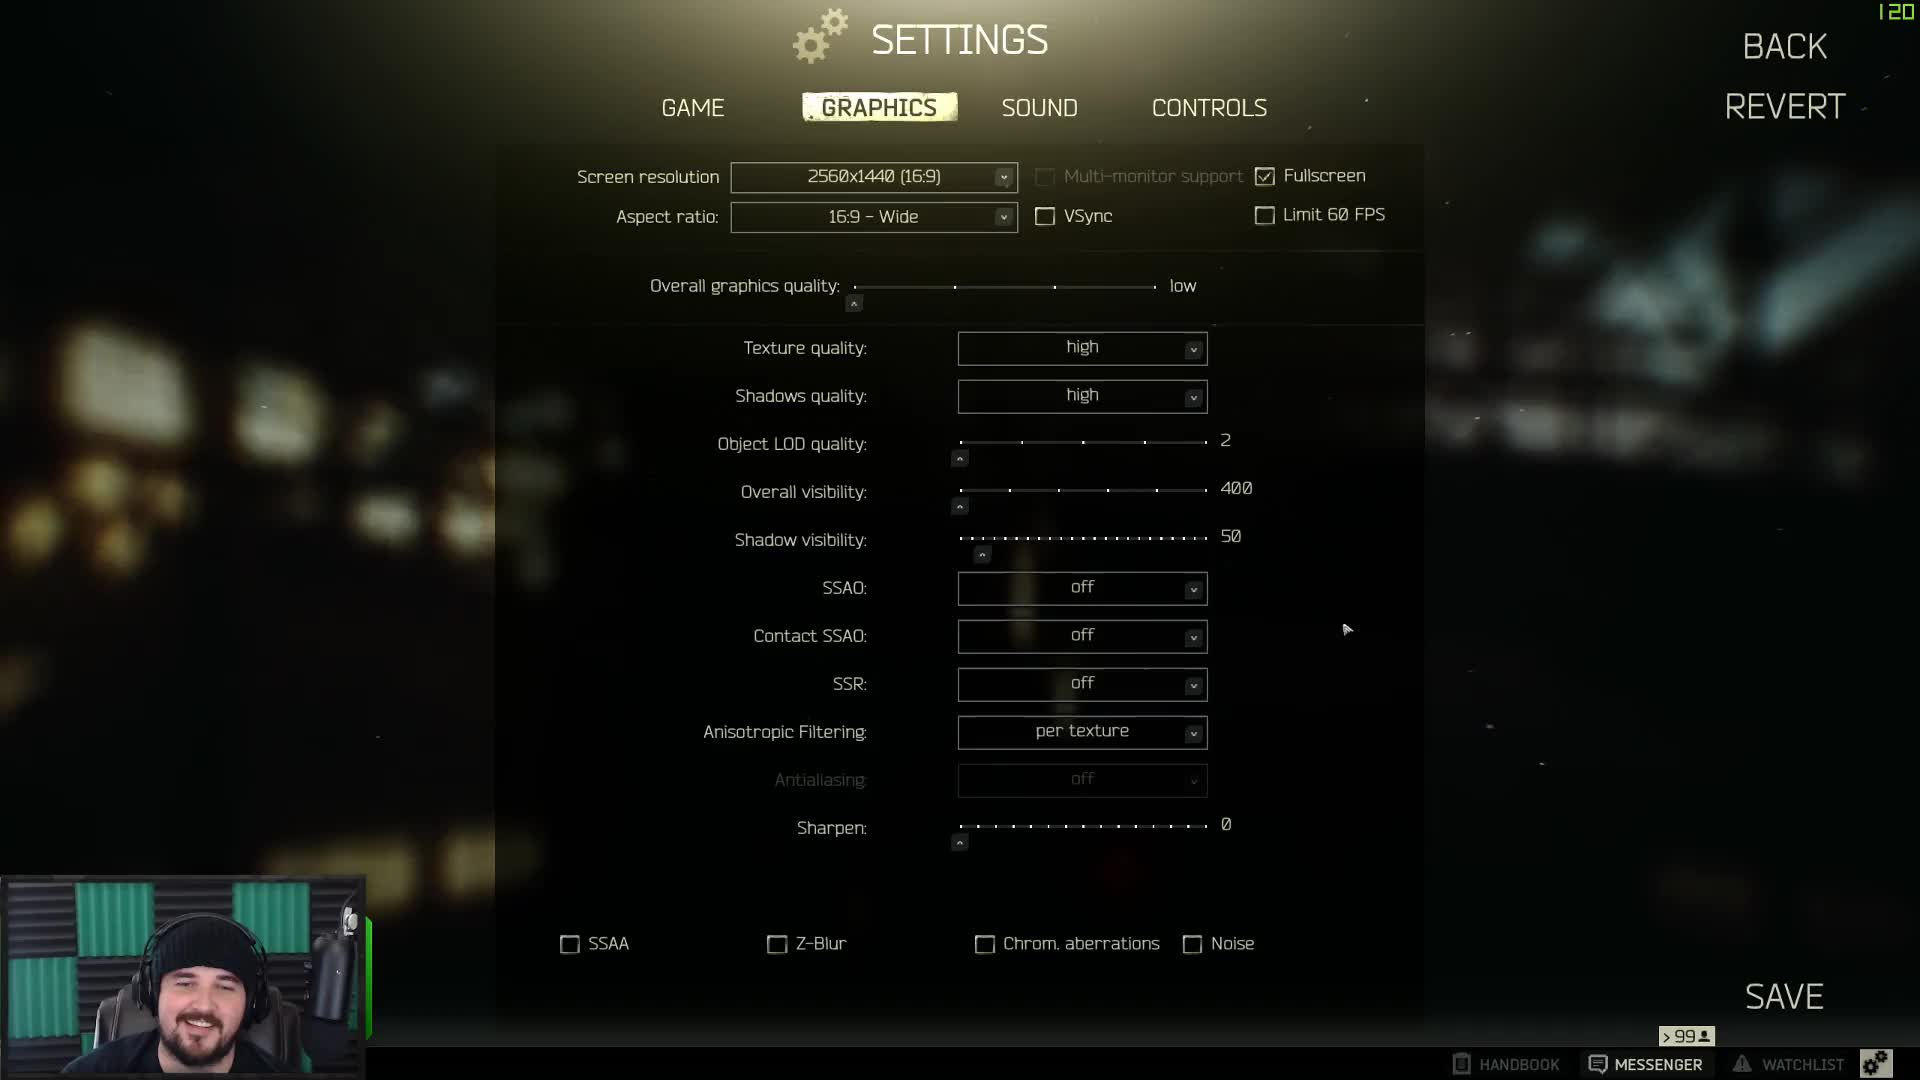 Kottons EFT Settings - Twitch